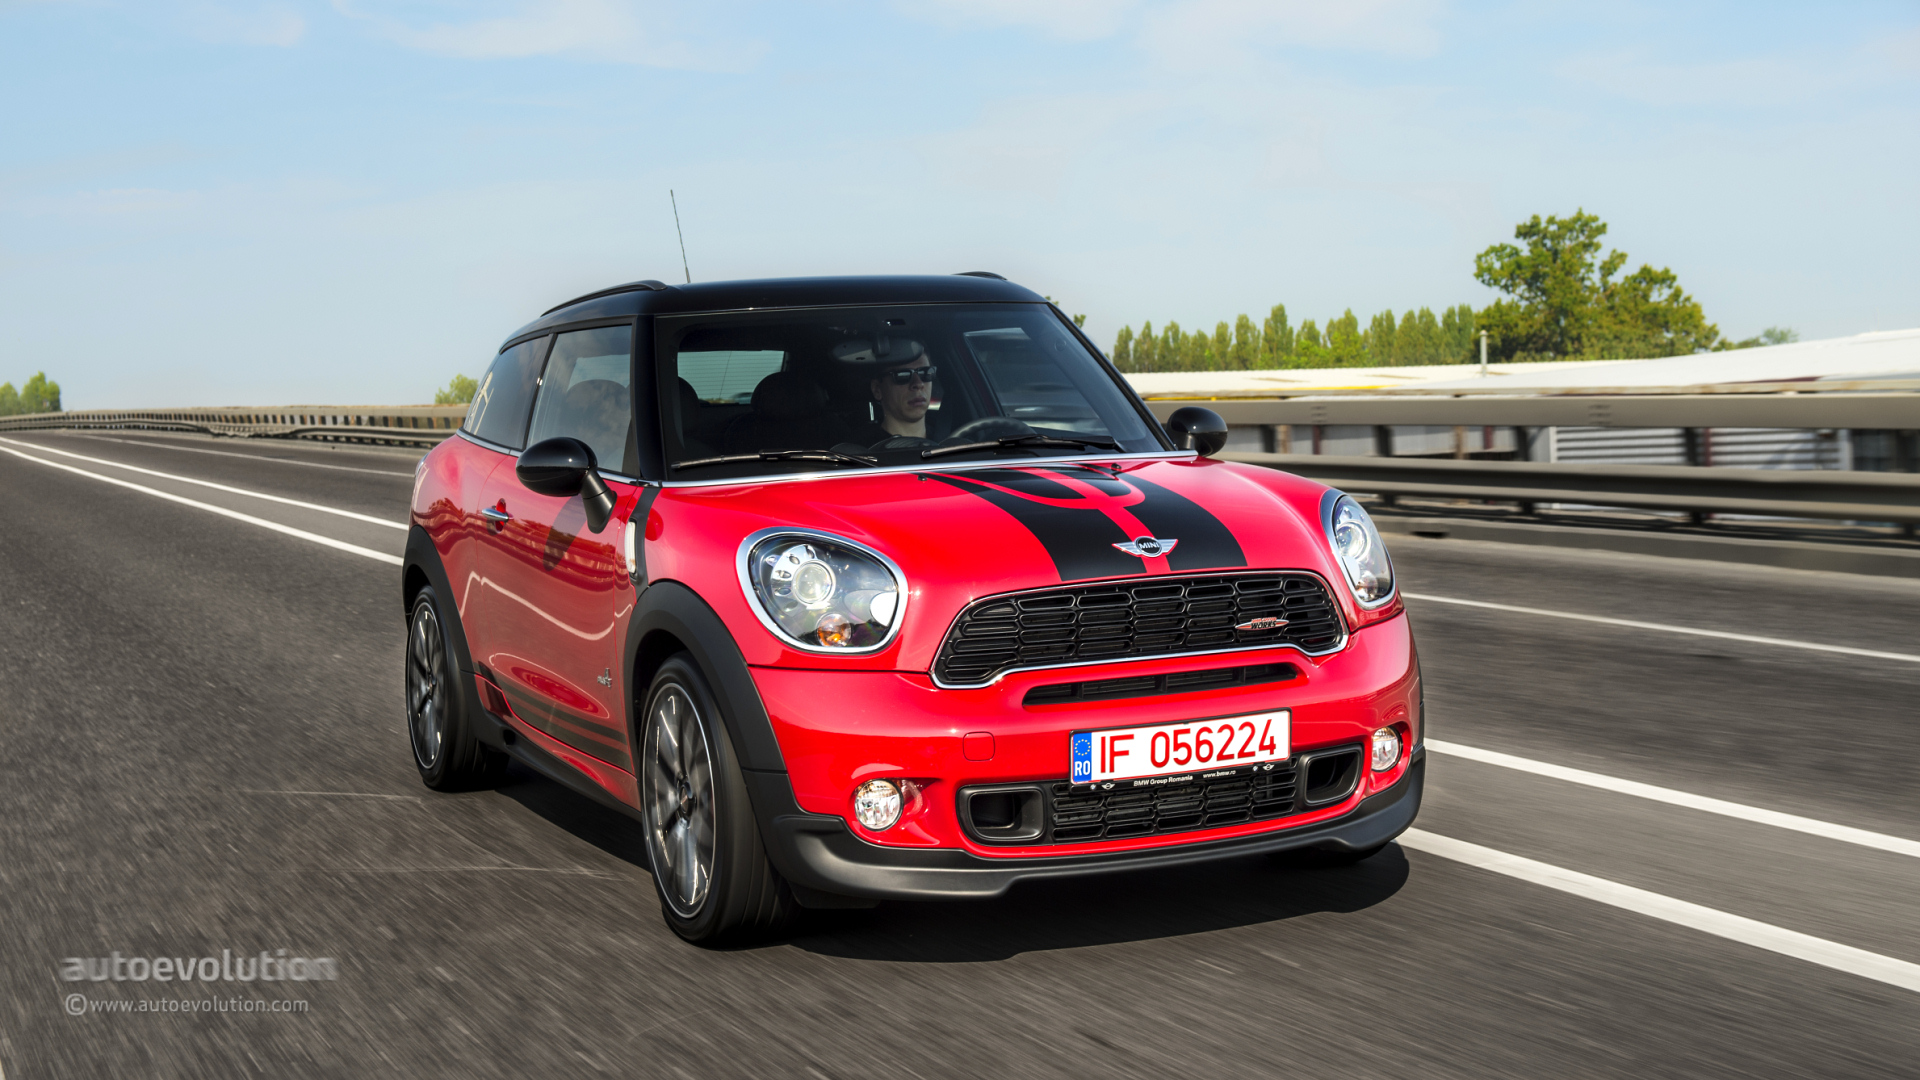 2015 Mini Jcw Paceman All4 Tested Why Were Having Second Thoughts Cooper Wiring Diagram 149 Photos